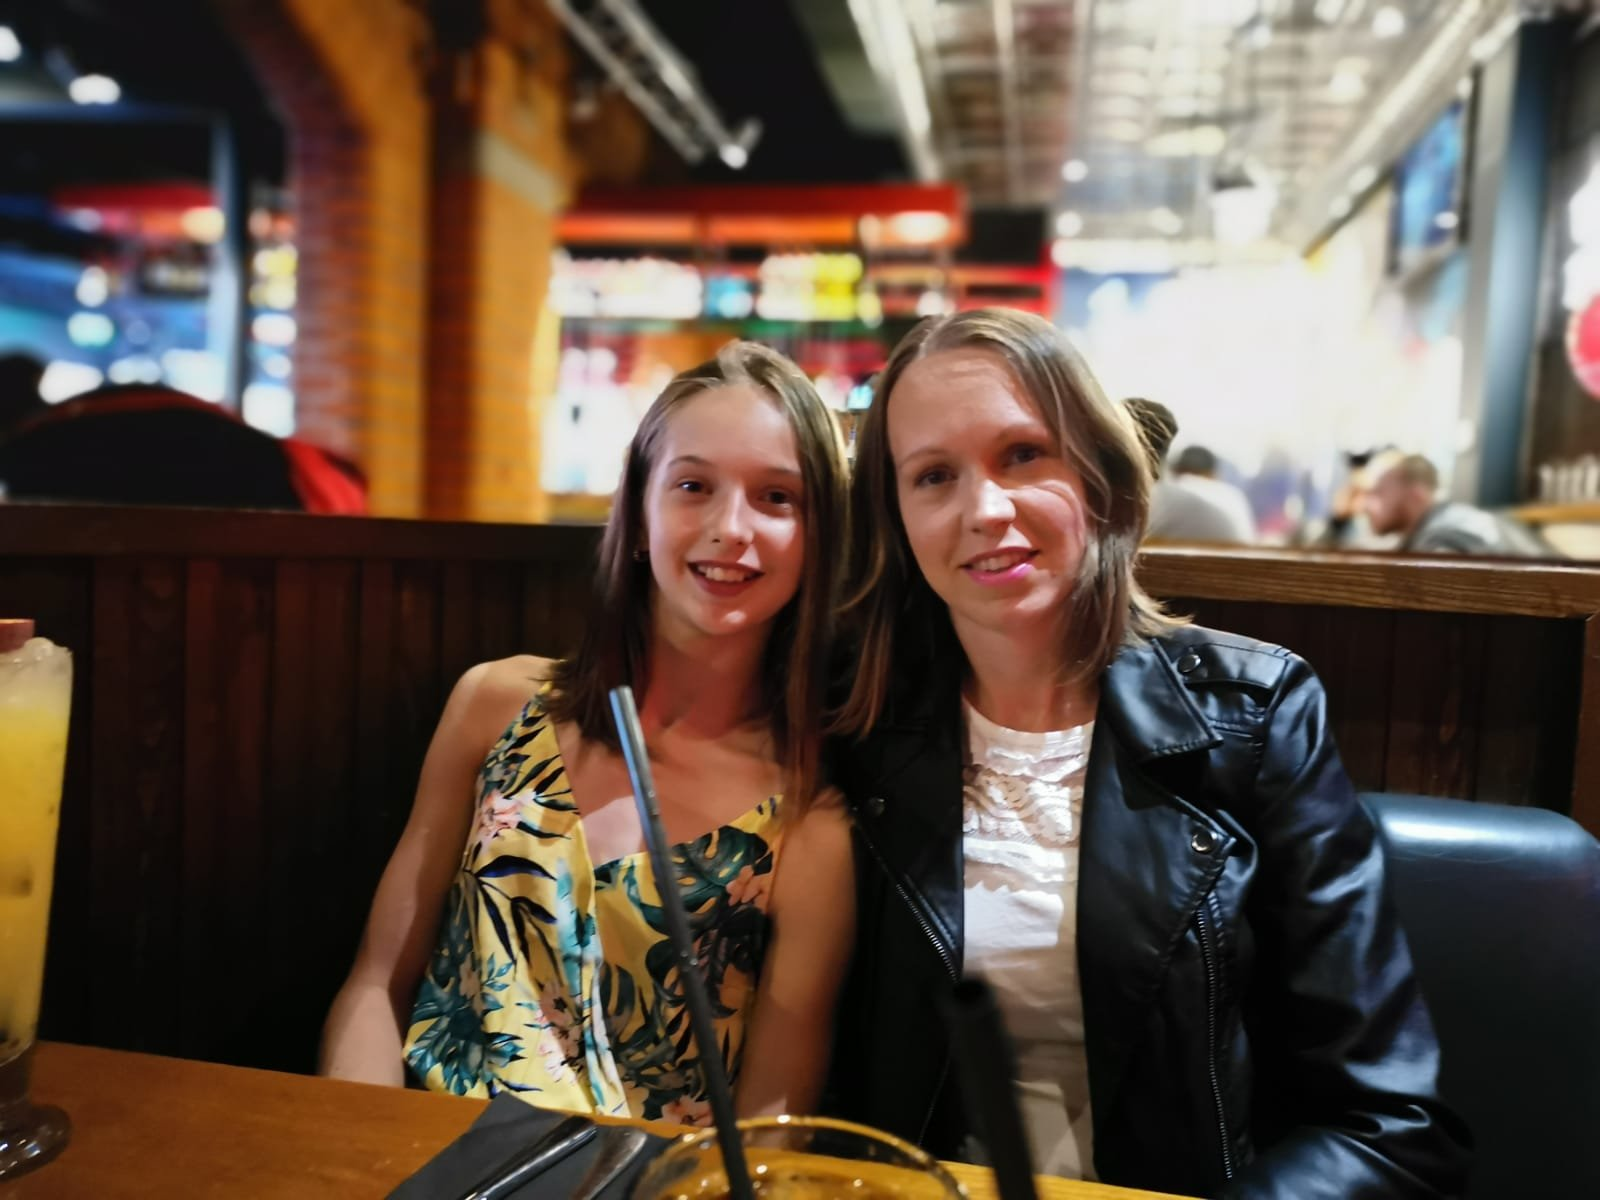 Myself and My daughter celebrating her 12th Birthday at TGI Fridays